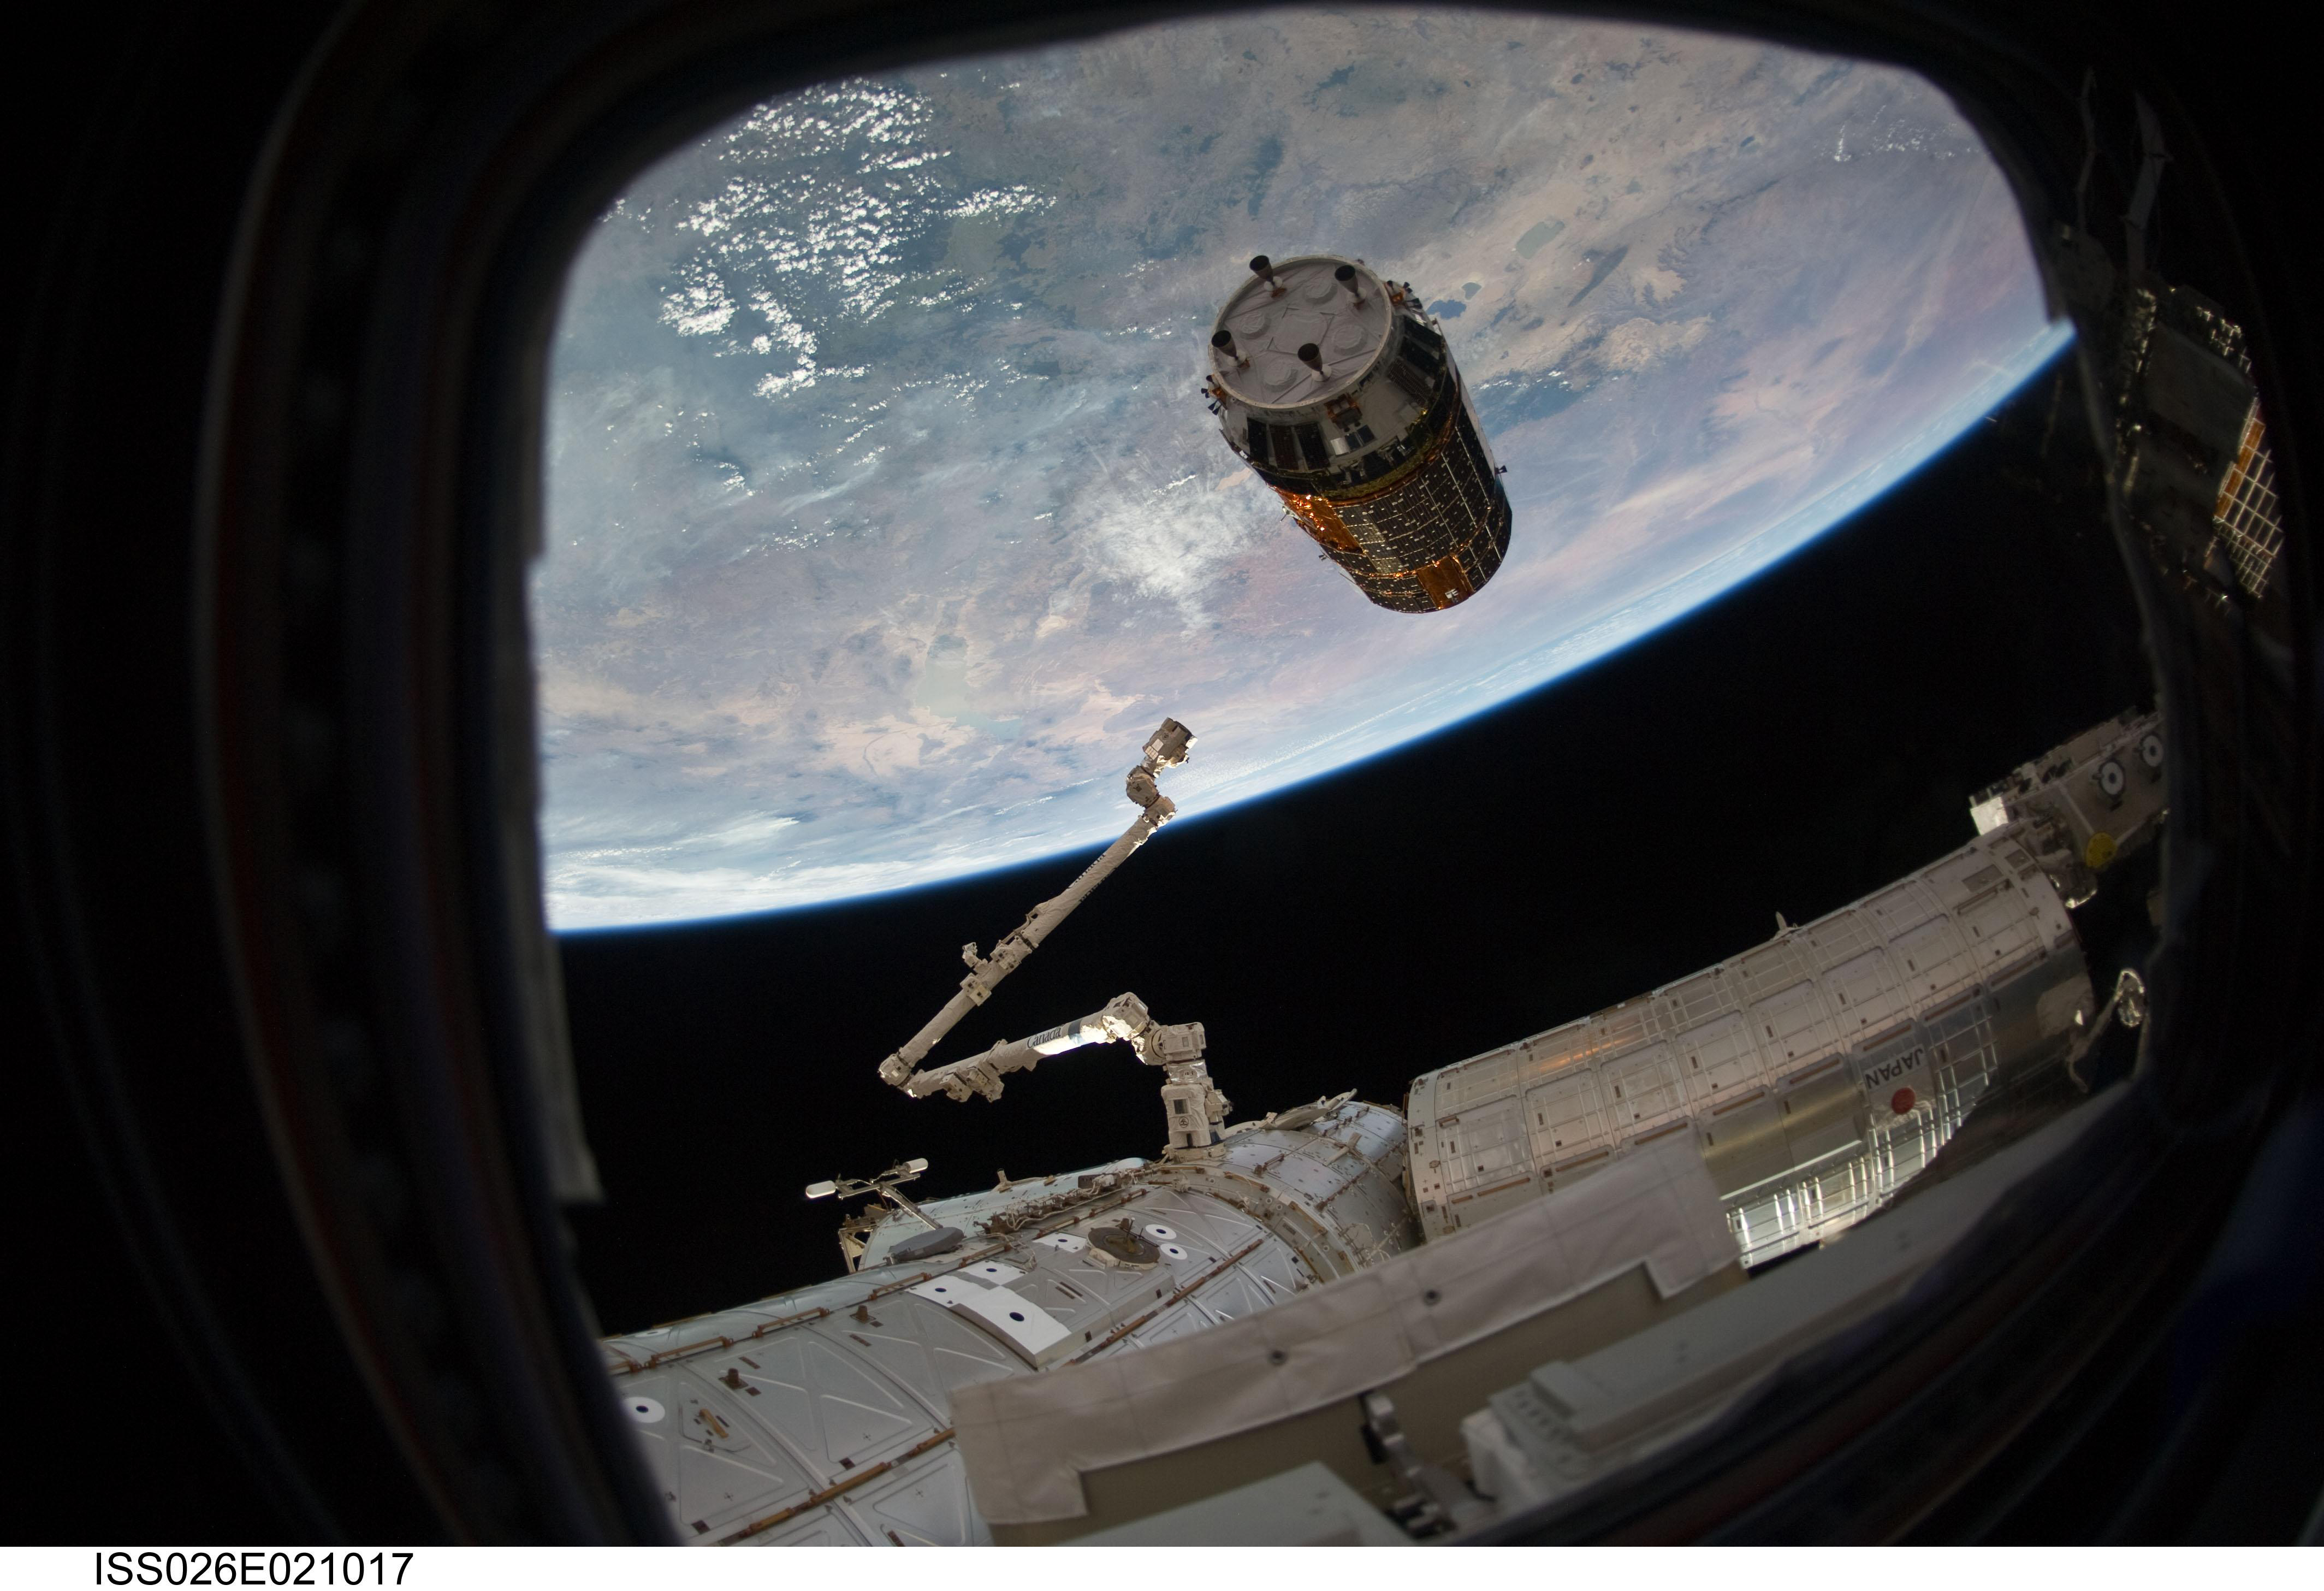 The unpiloted Japanese Kounotori 2 H-II Transfer Vehicle (HTV2) approaches the ISS, delivering more than four tons of food and supplies to the space station and its crew members.